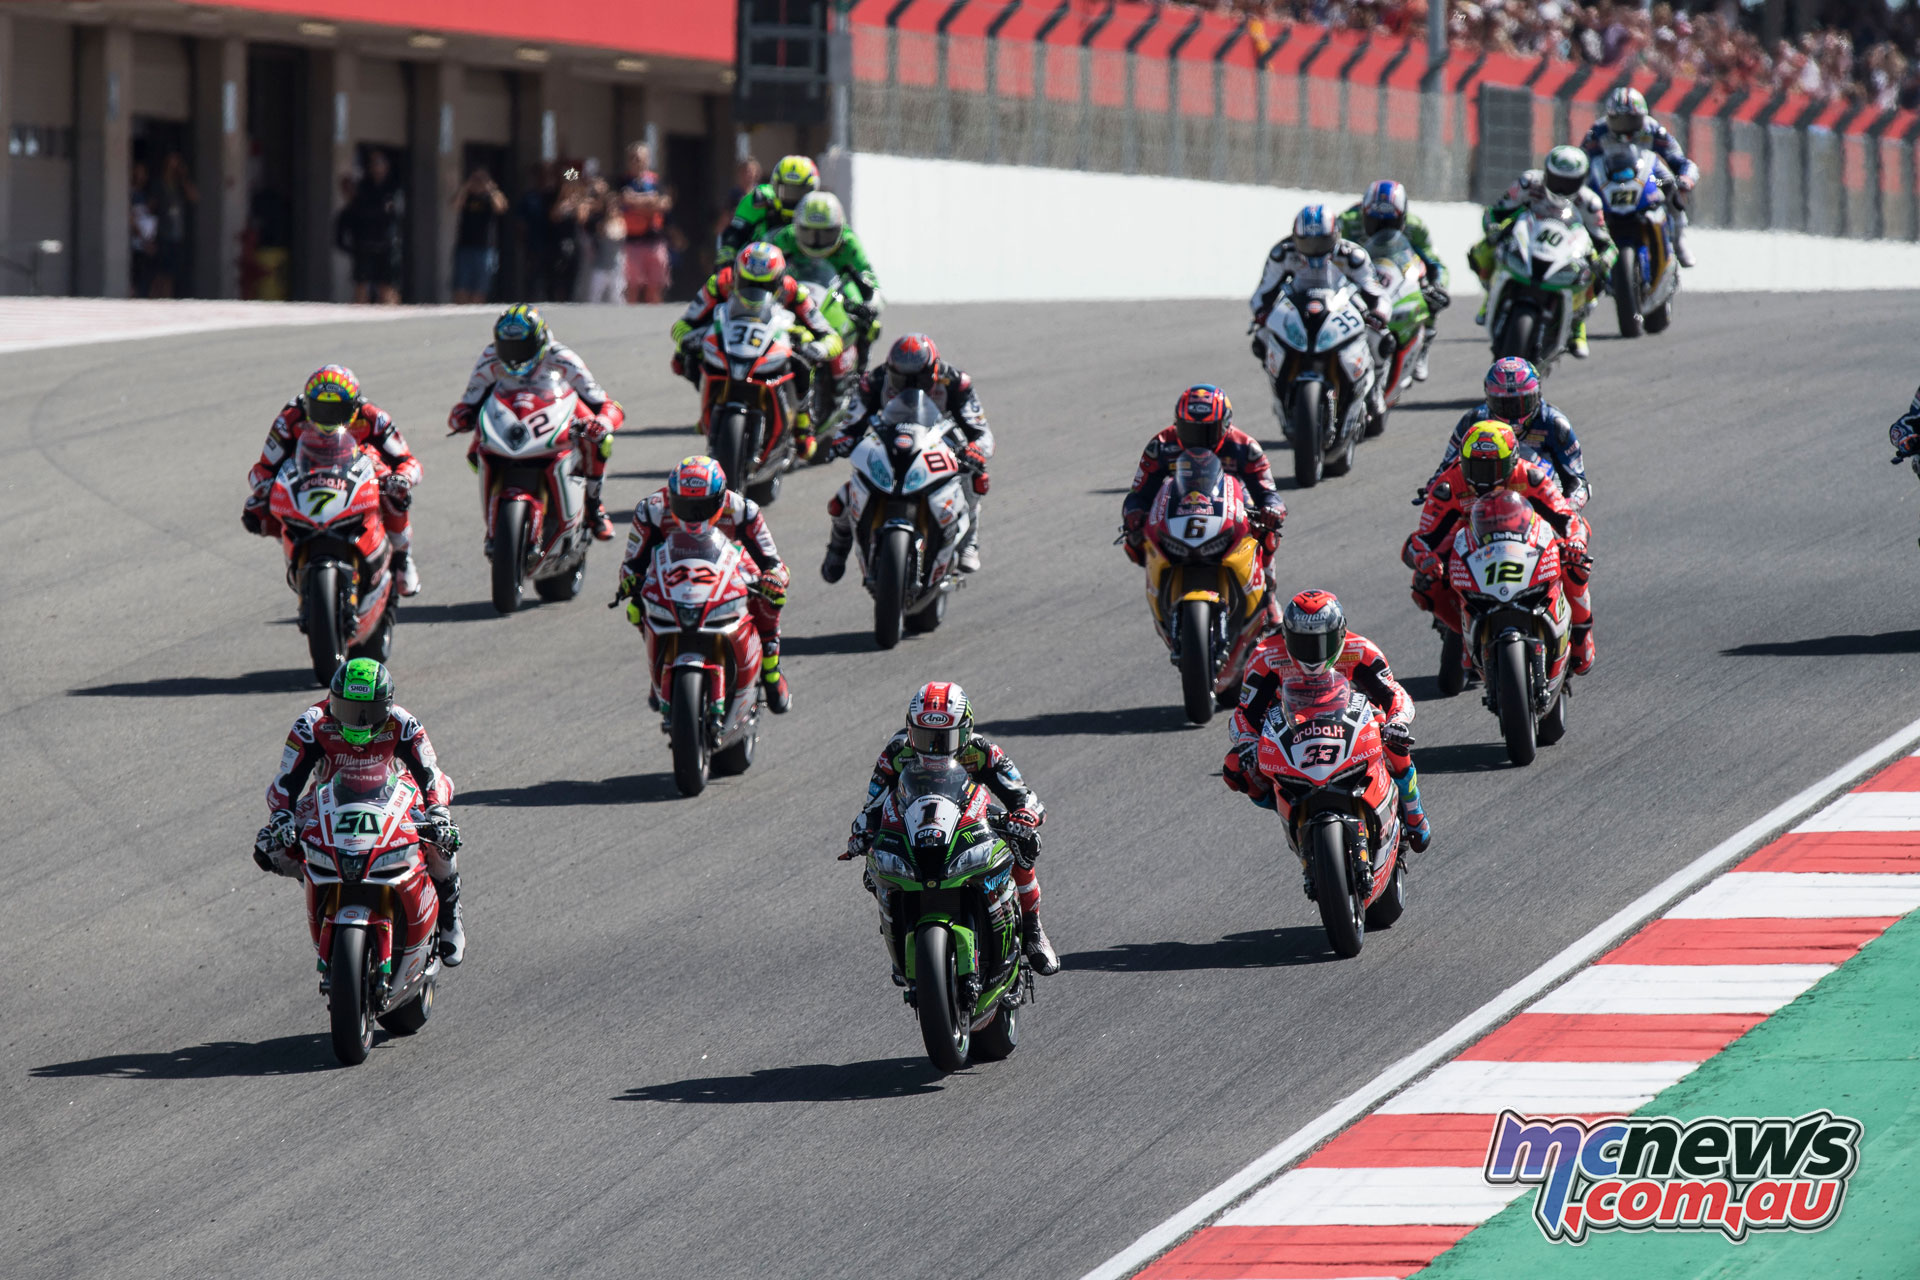 World Superbikes at Portimao